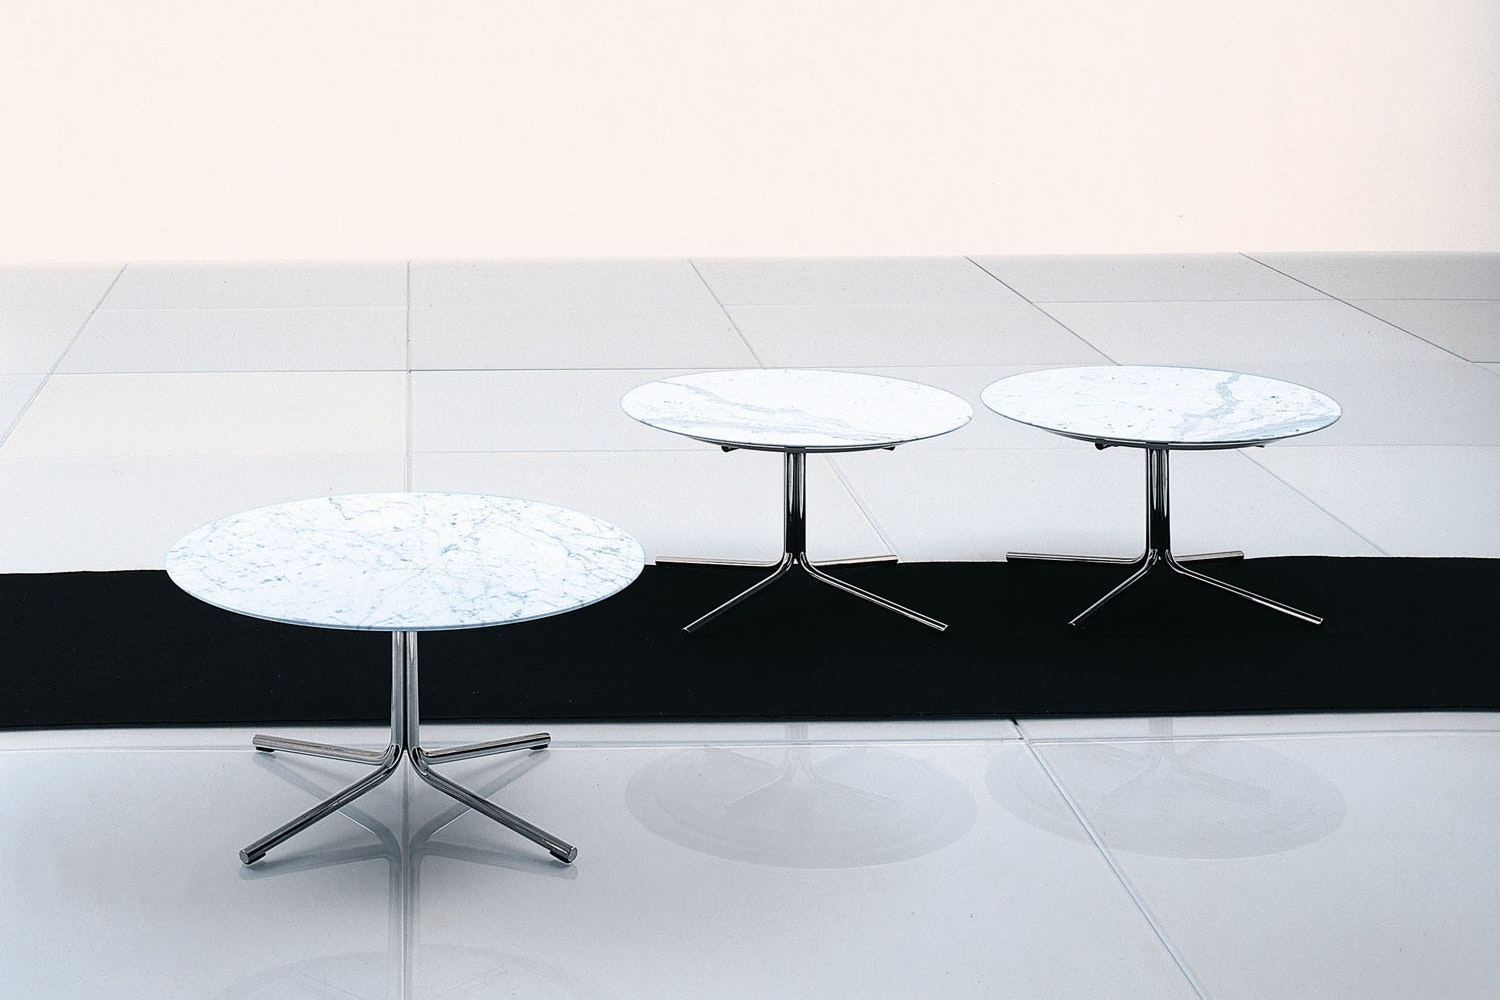 Jelly Table Marble by Piero Lissoni for Living Divani